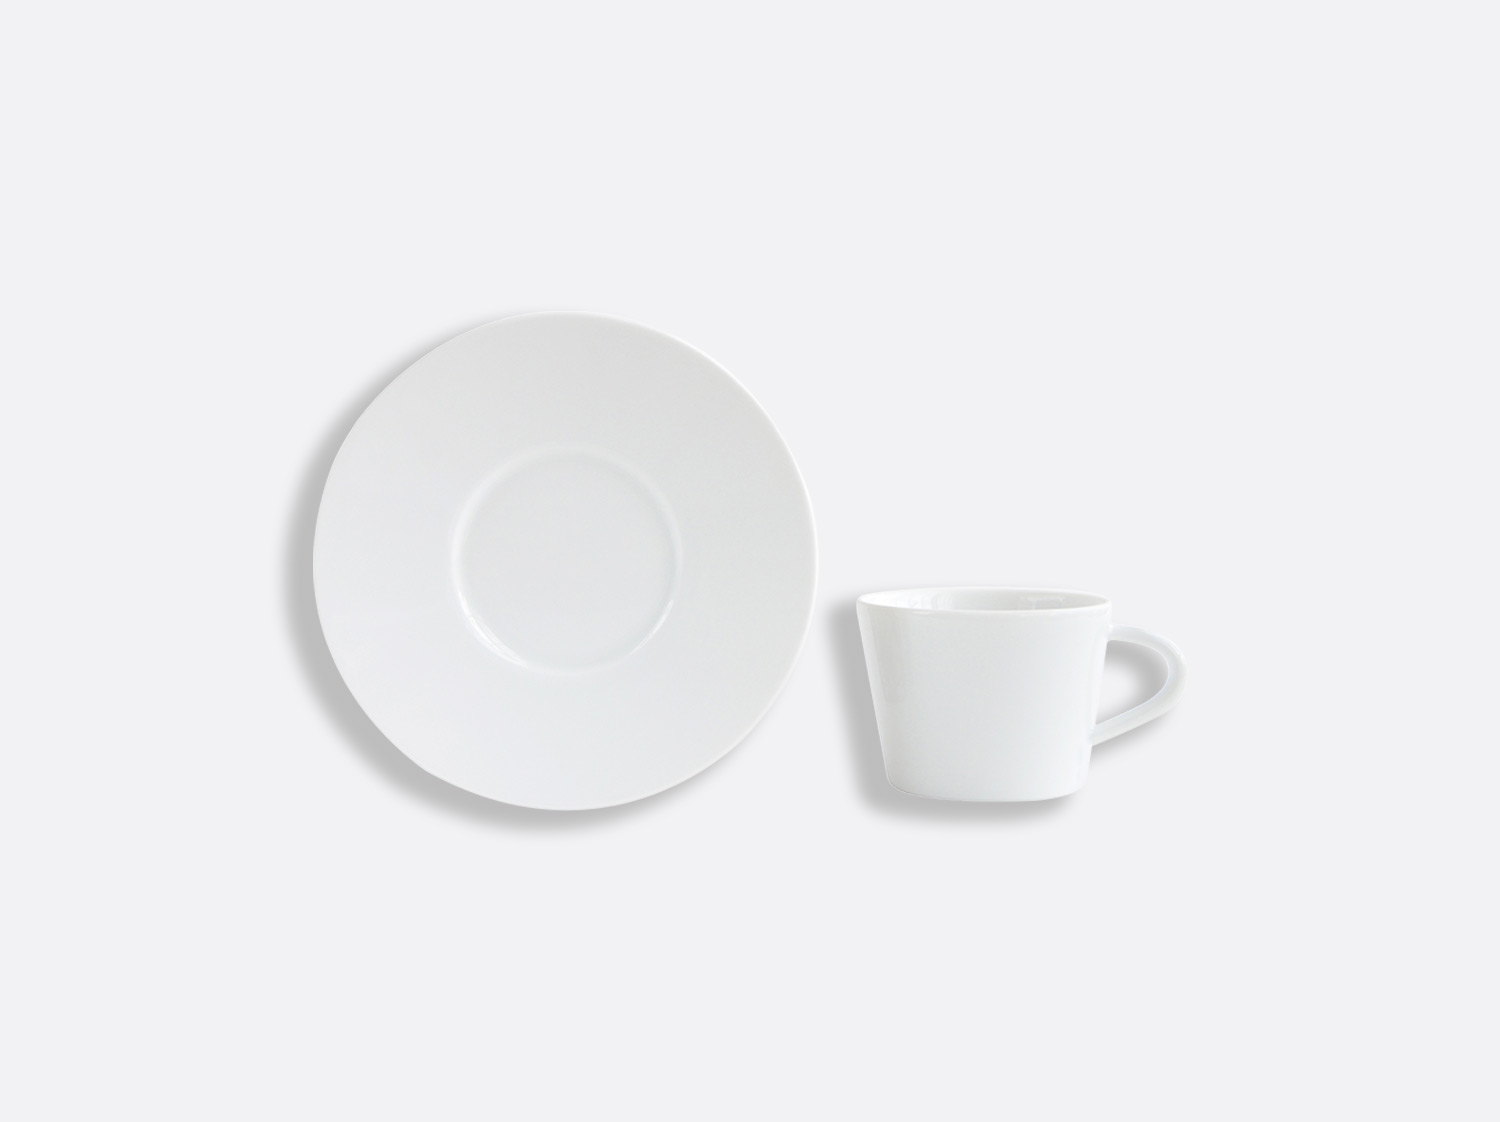 Tasse et soucoupe café 6 cl en porcelaine de la collection ASTRE BLANC Bernardaud